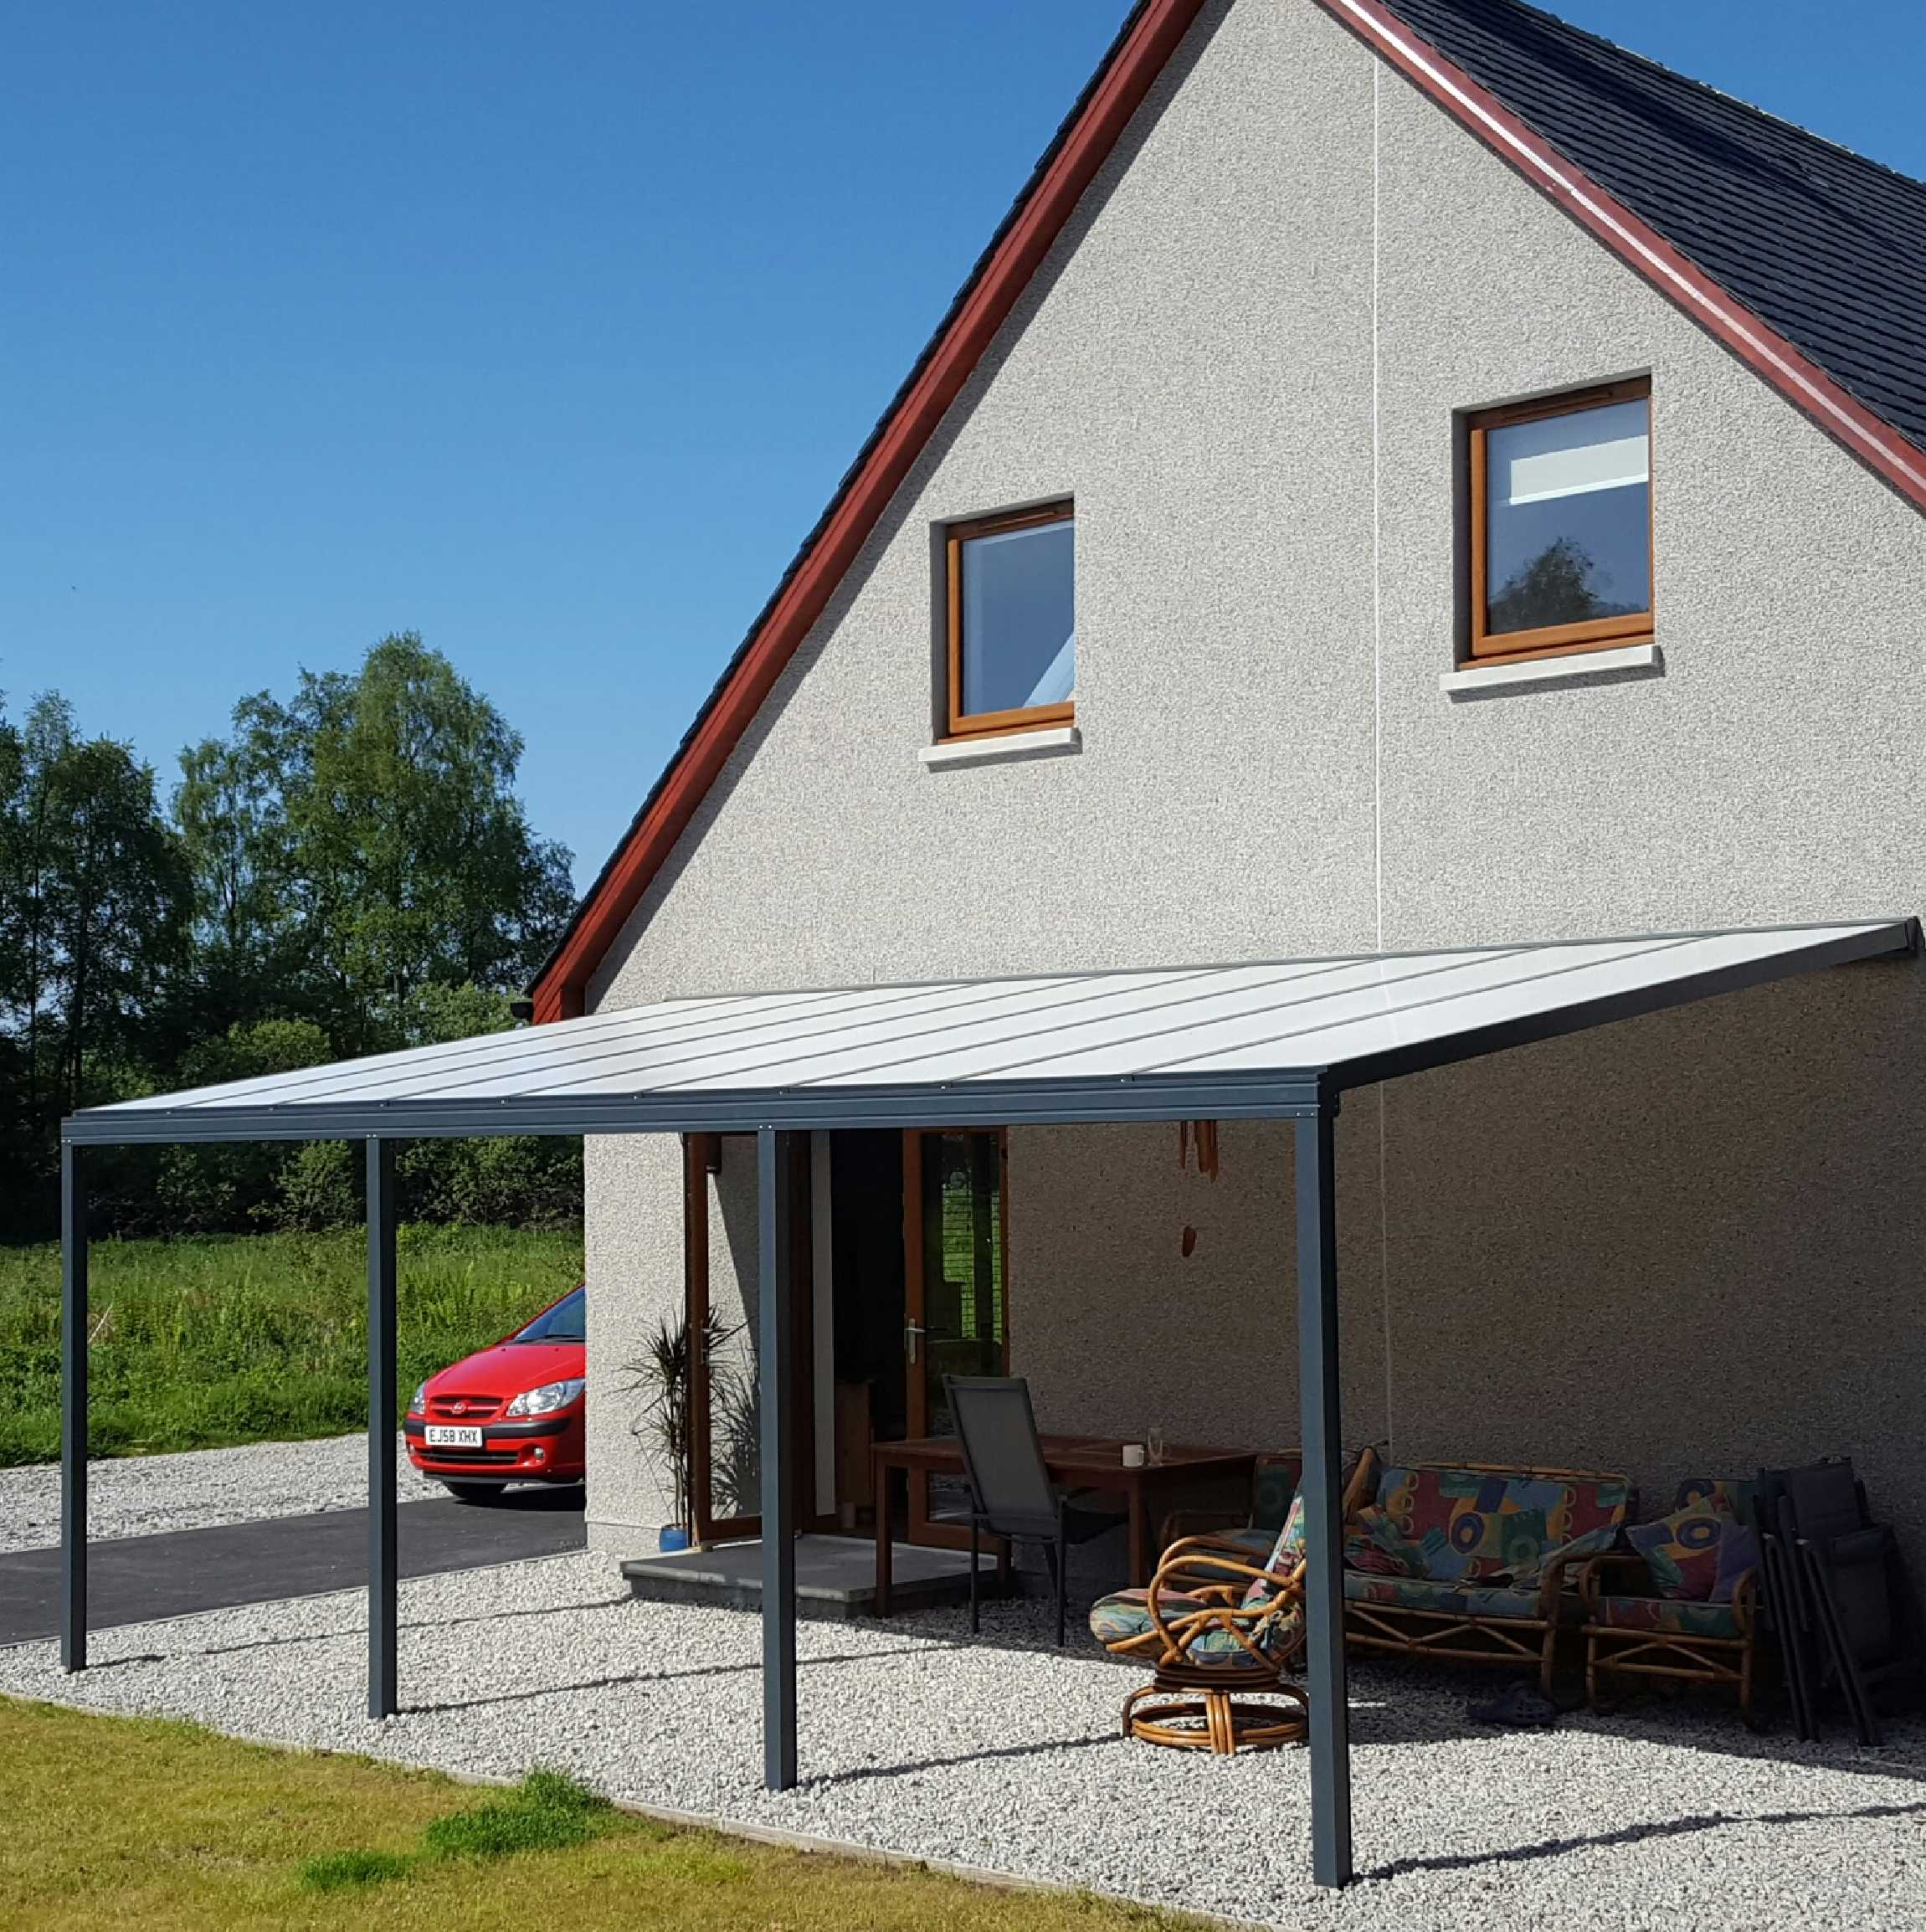 Great selection of Omega Smart Lean-To Canopy, Anthracite Grey, 16mm Polycarbonate Glazing - 3.1m (W) x 3.0m (P), (2) Supporting Posts